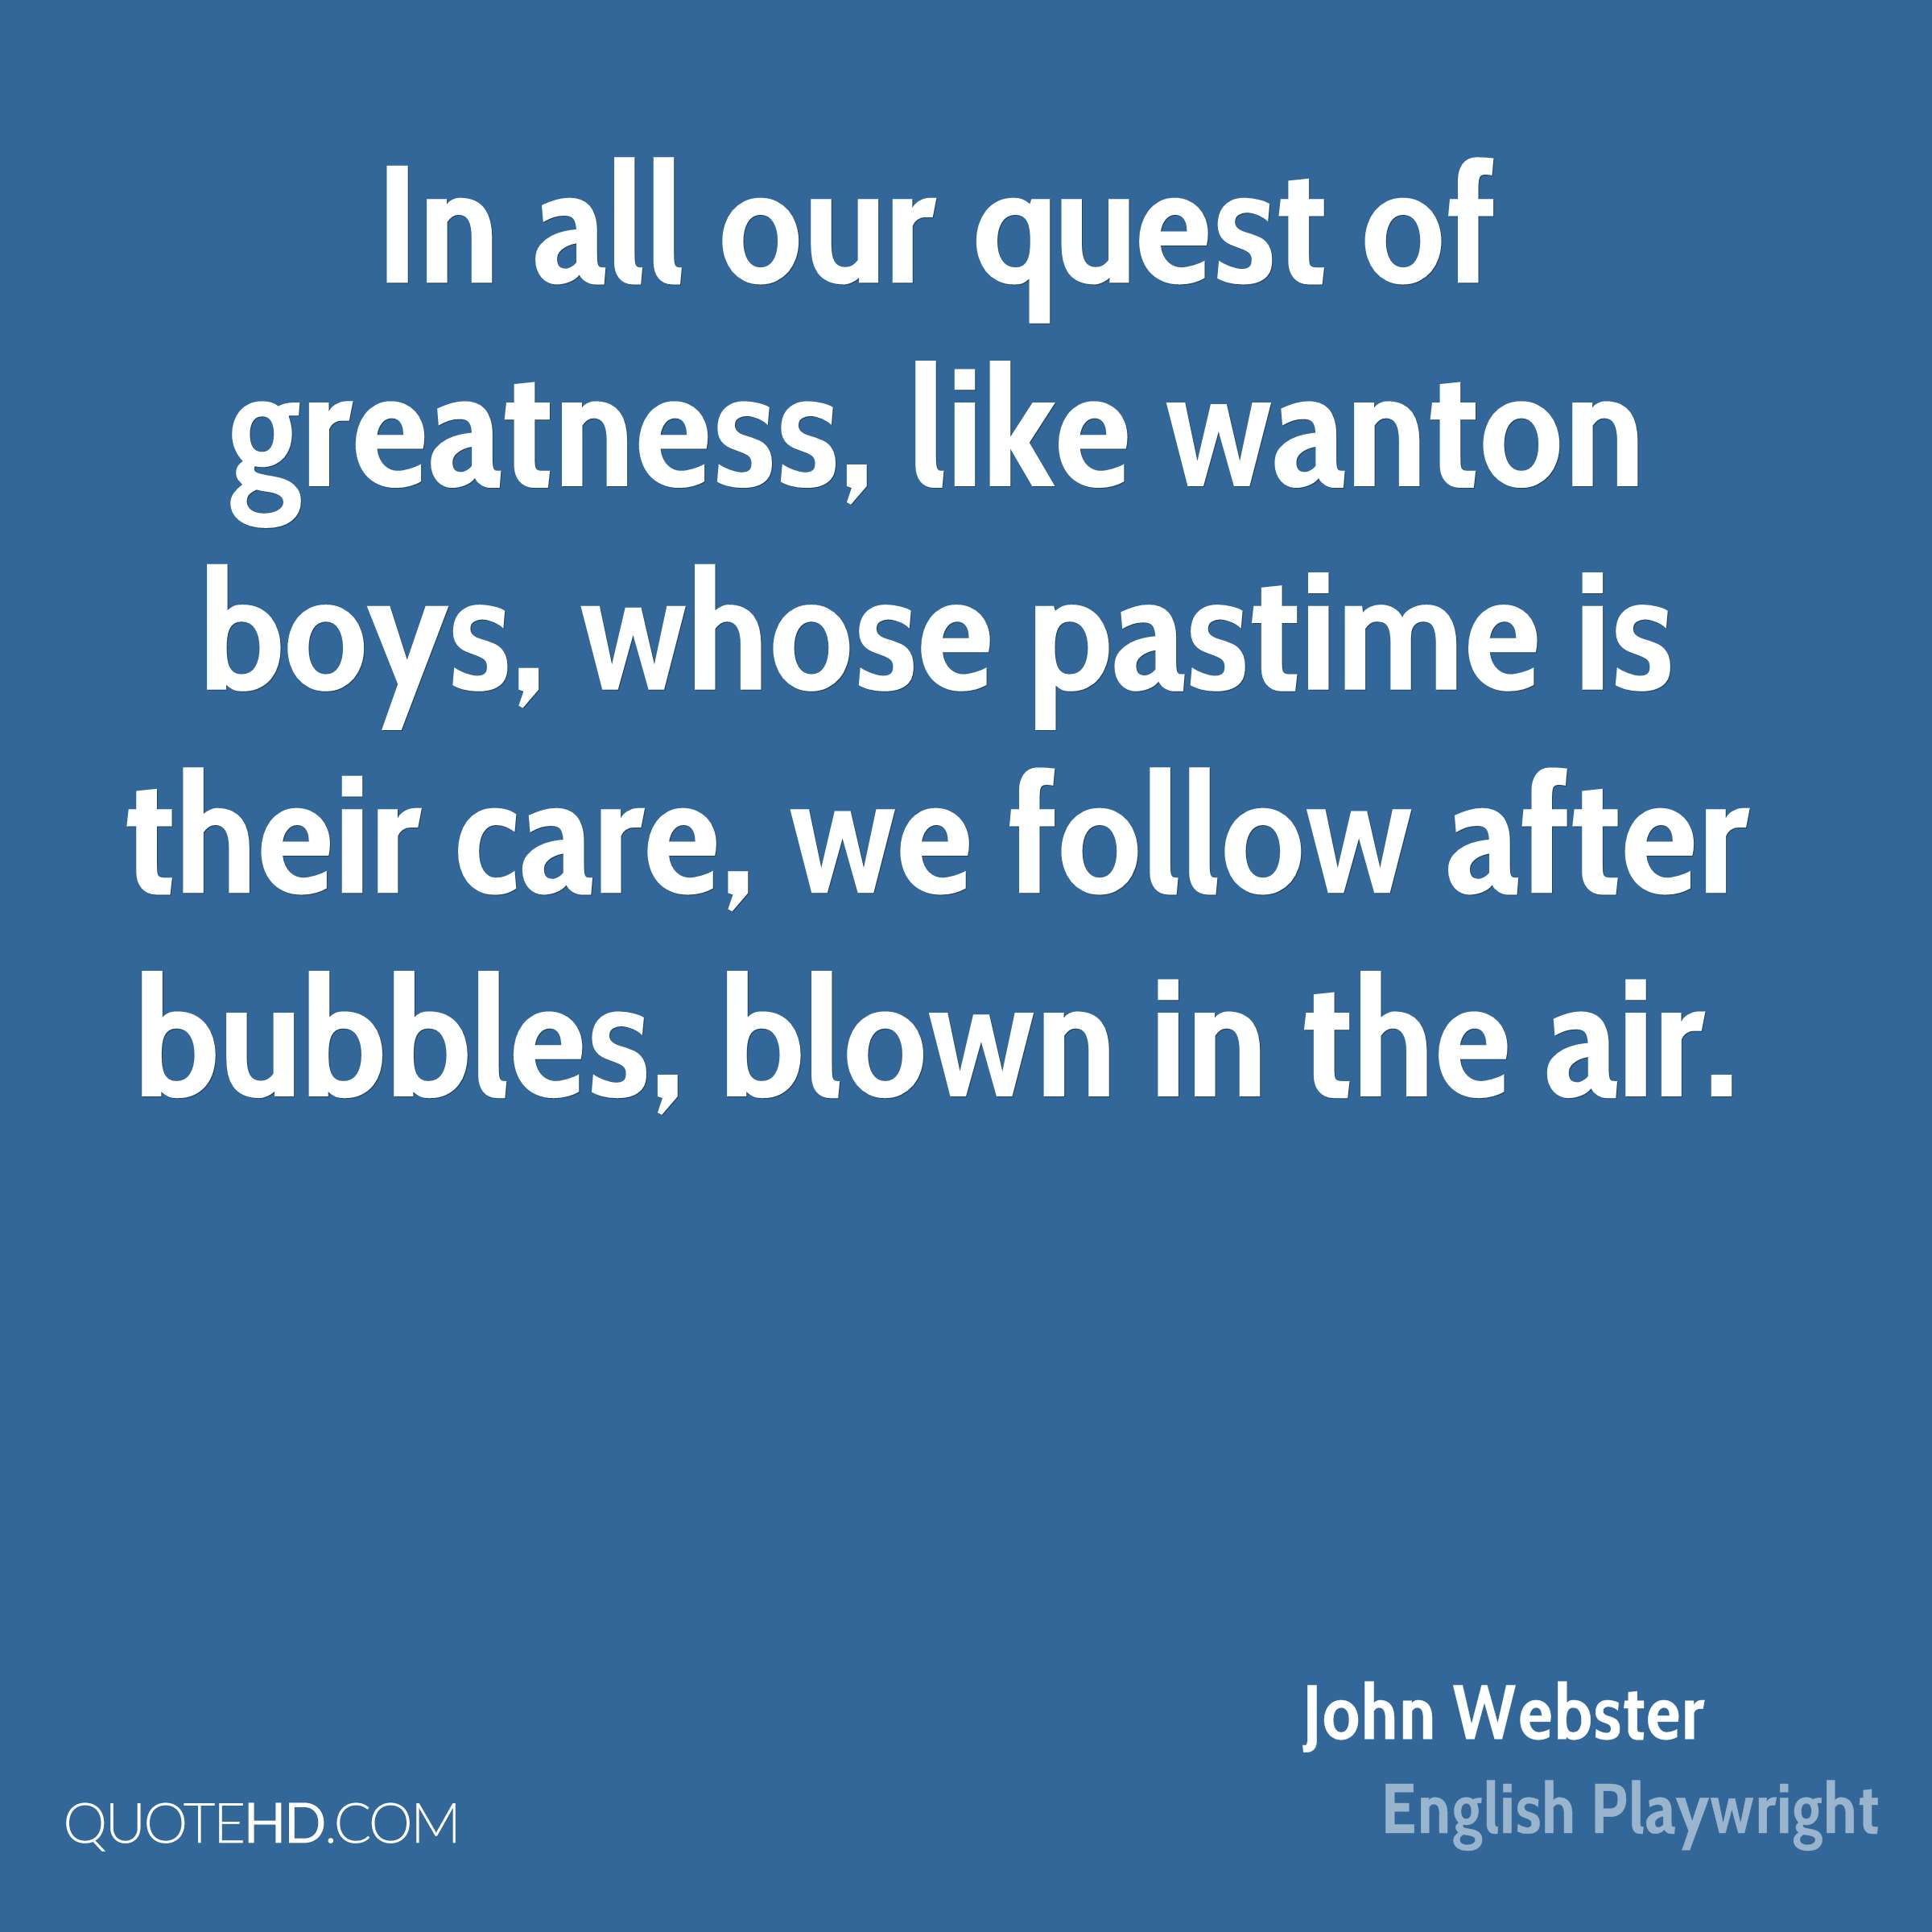 In all our quest of greatness, like wanton boys, whose pastime is their care, we follow after bubbles, blown in the air.